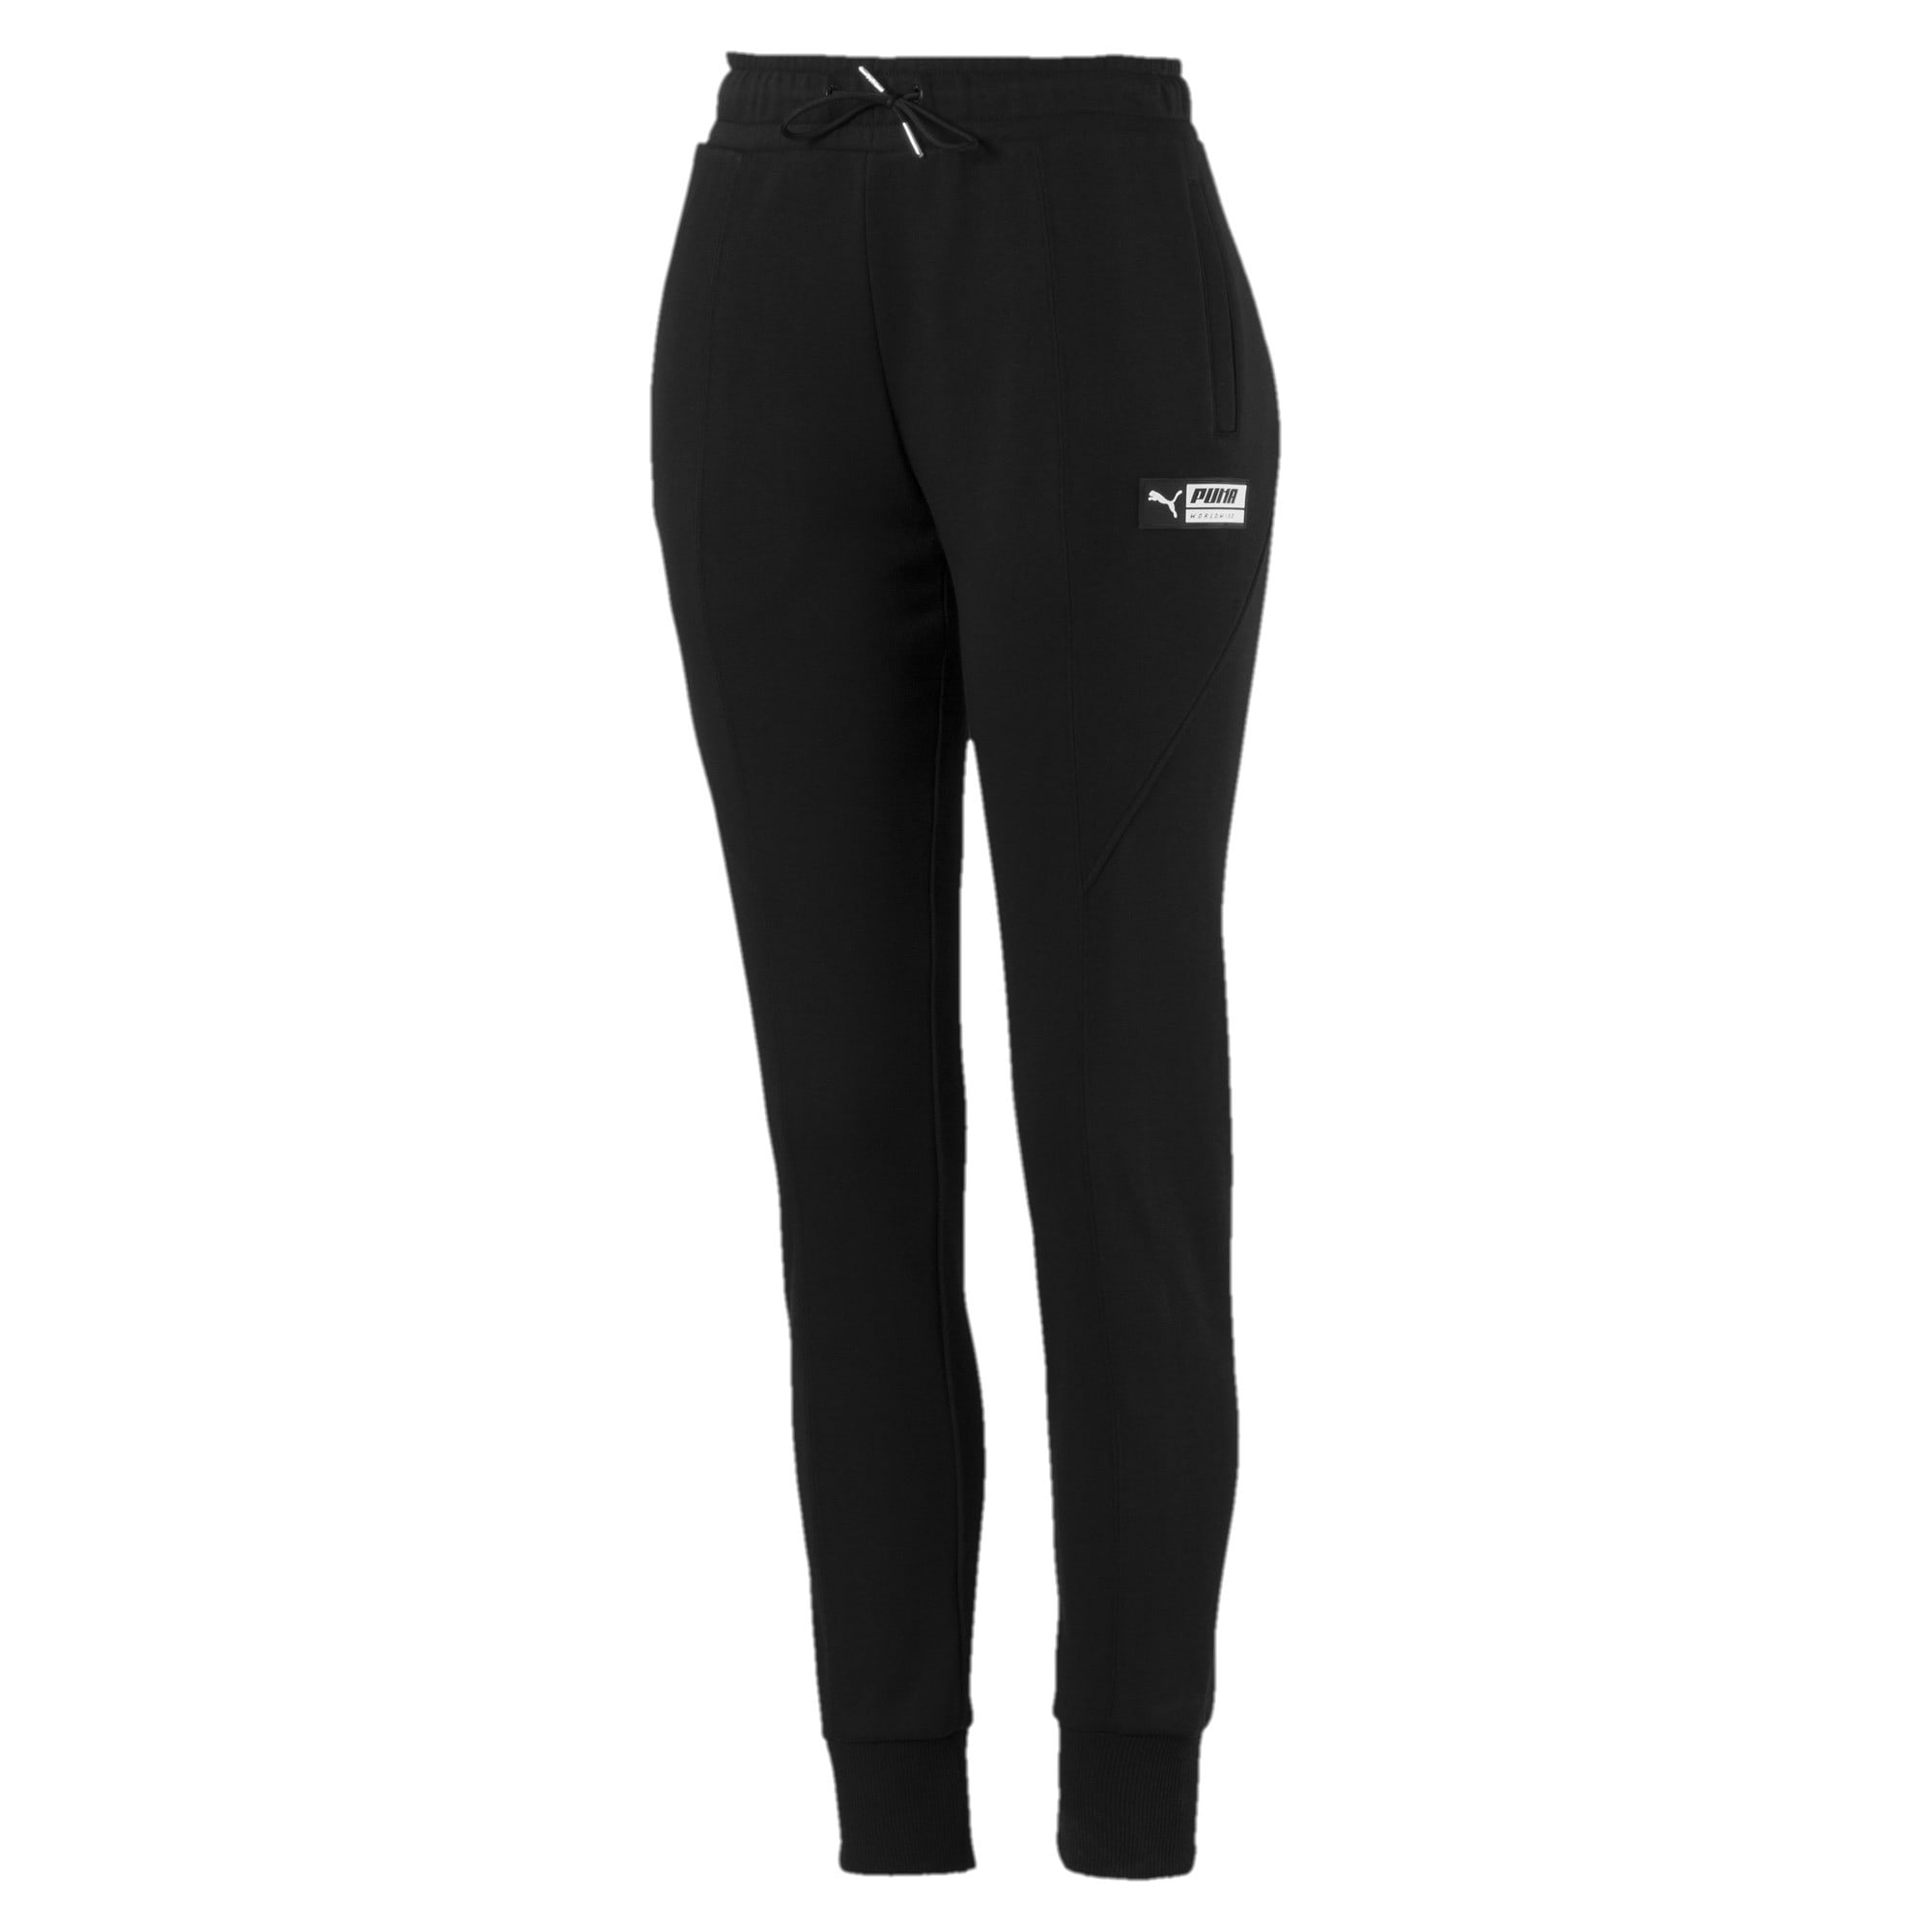 Thumbnail 4 of Trailblazer sweatpants voor dames, Puma Black, medium